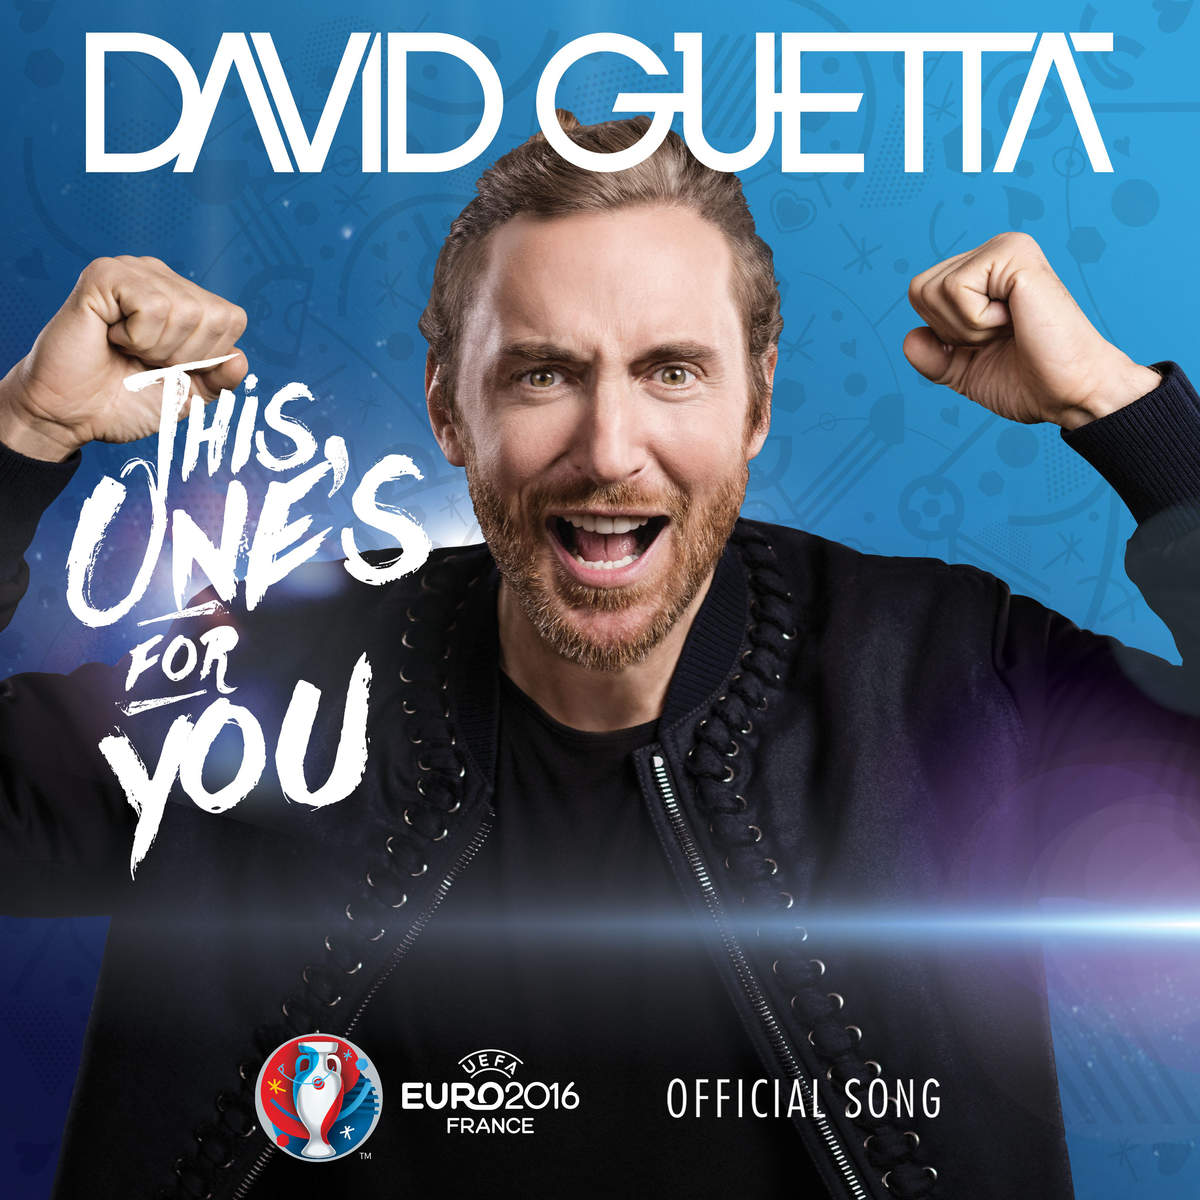 David-Guetta-This-Ones-For-You-2015-1200x1200